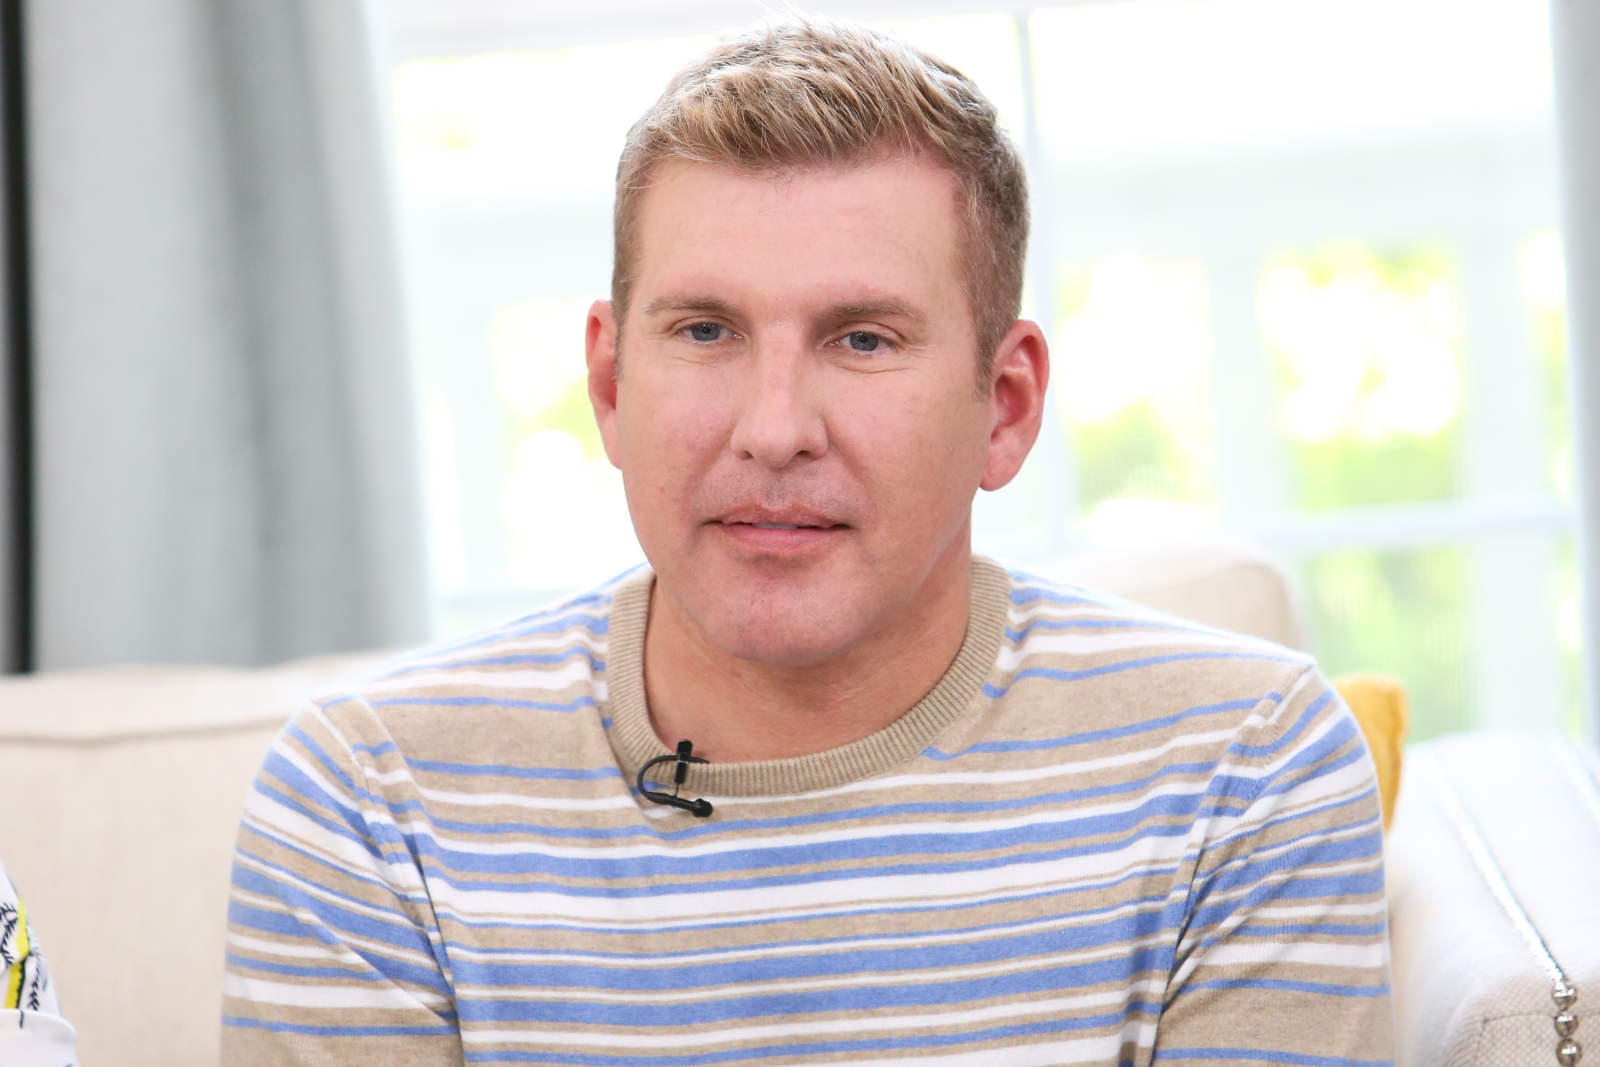 Chrisley Knows Best star Todd Chrisley hospitalized for coronavirus